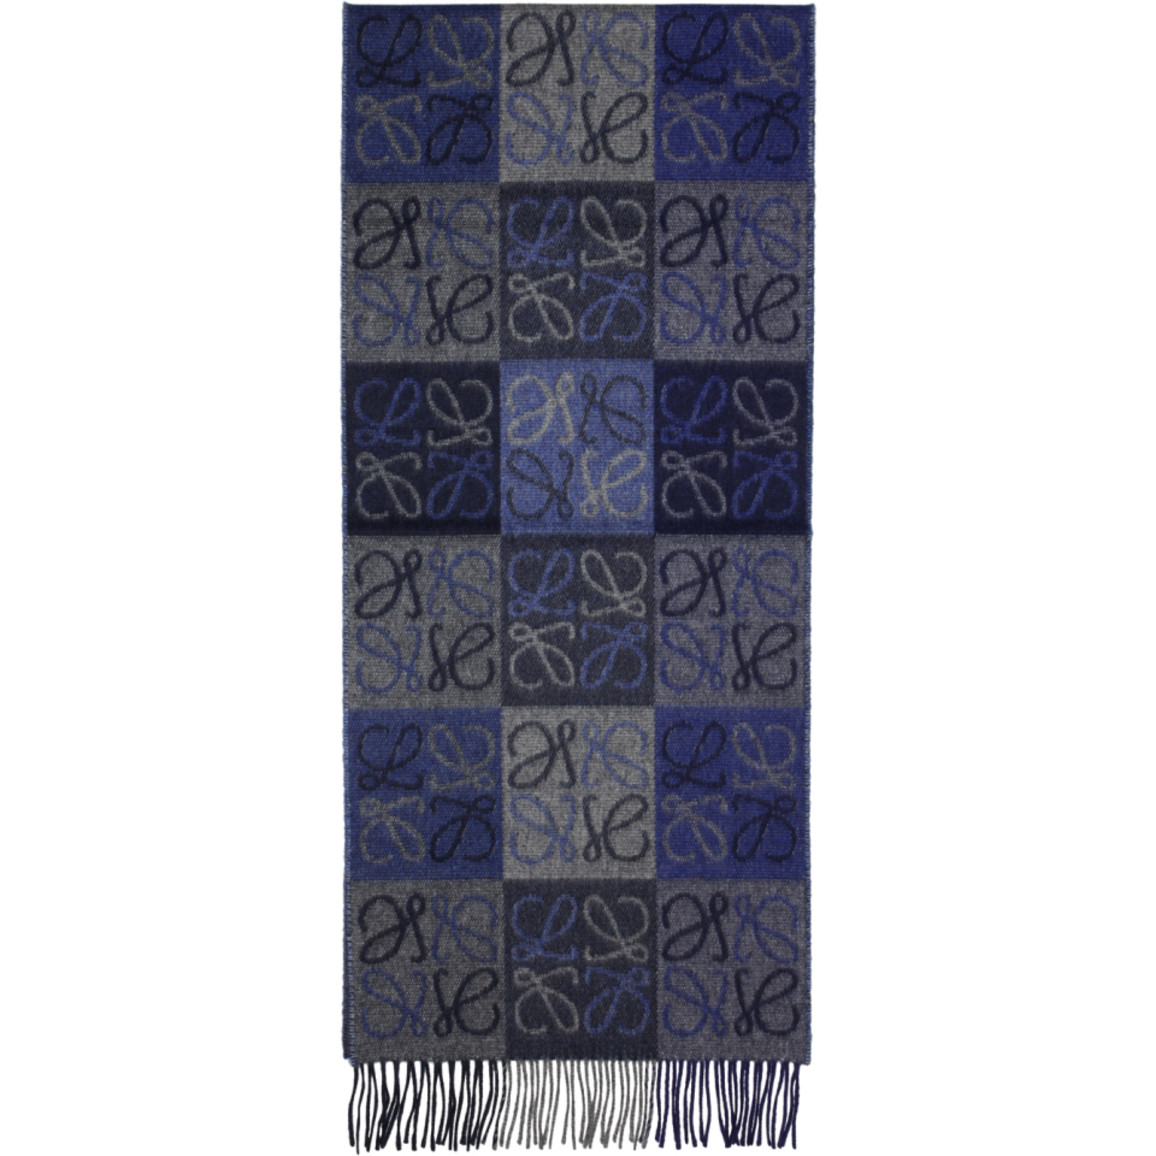 Blue and Grey Logo Anagram Scarf Loewe 3UEYx